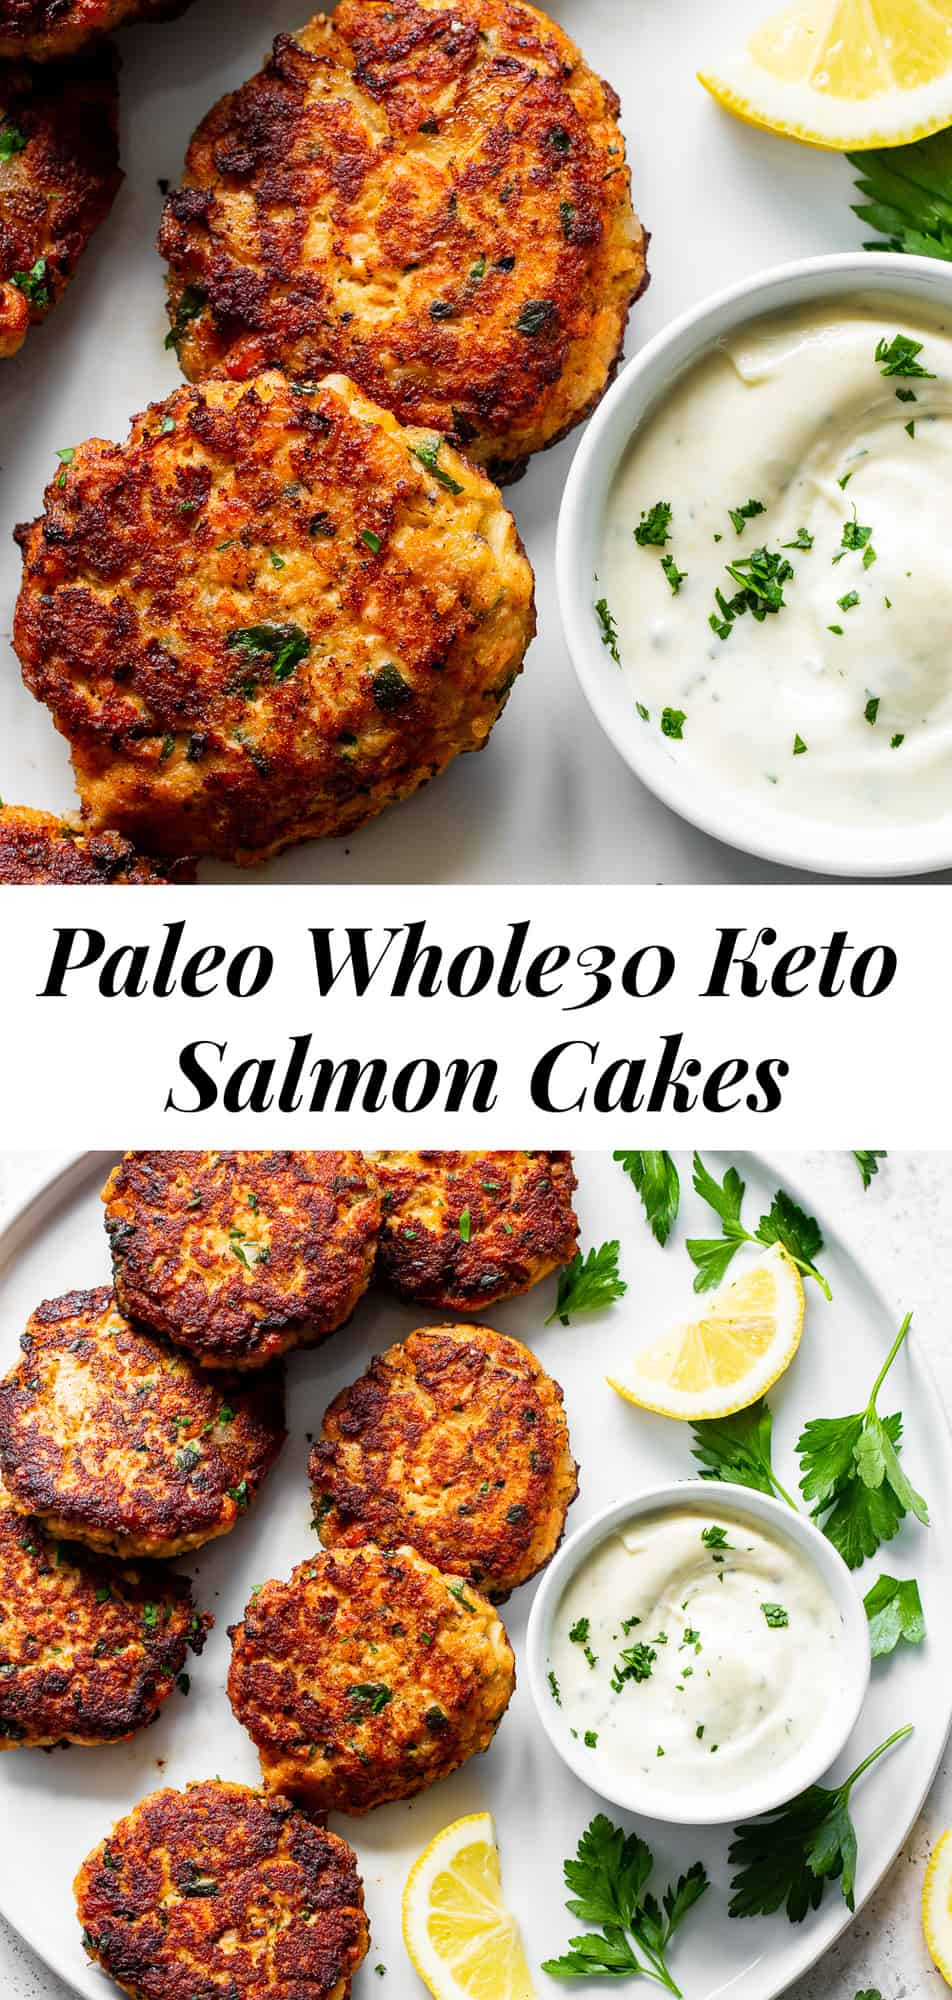 These simple salmon cakes are packed with flavor, easy to make and kid approved! Served with an easy aioli, they're perfect over a salad for a light lunch or dinner or with your favorite roasted or sautéed veggies. Paleo, gluten free, Whole30 and keto. #paleo #whole30 #keto